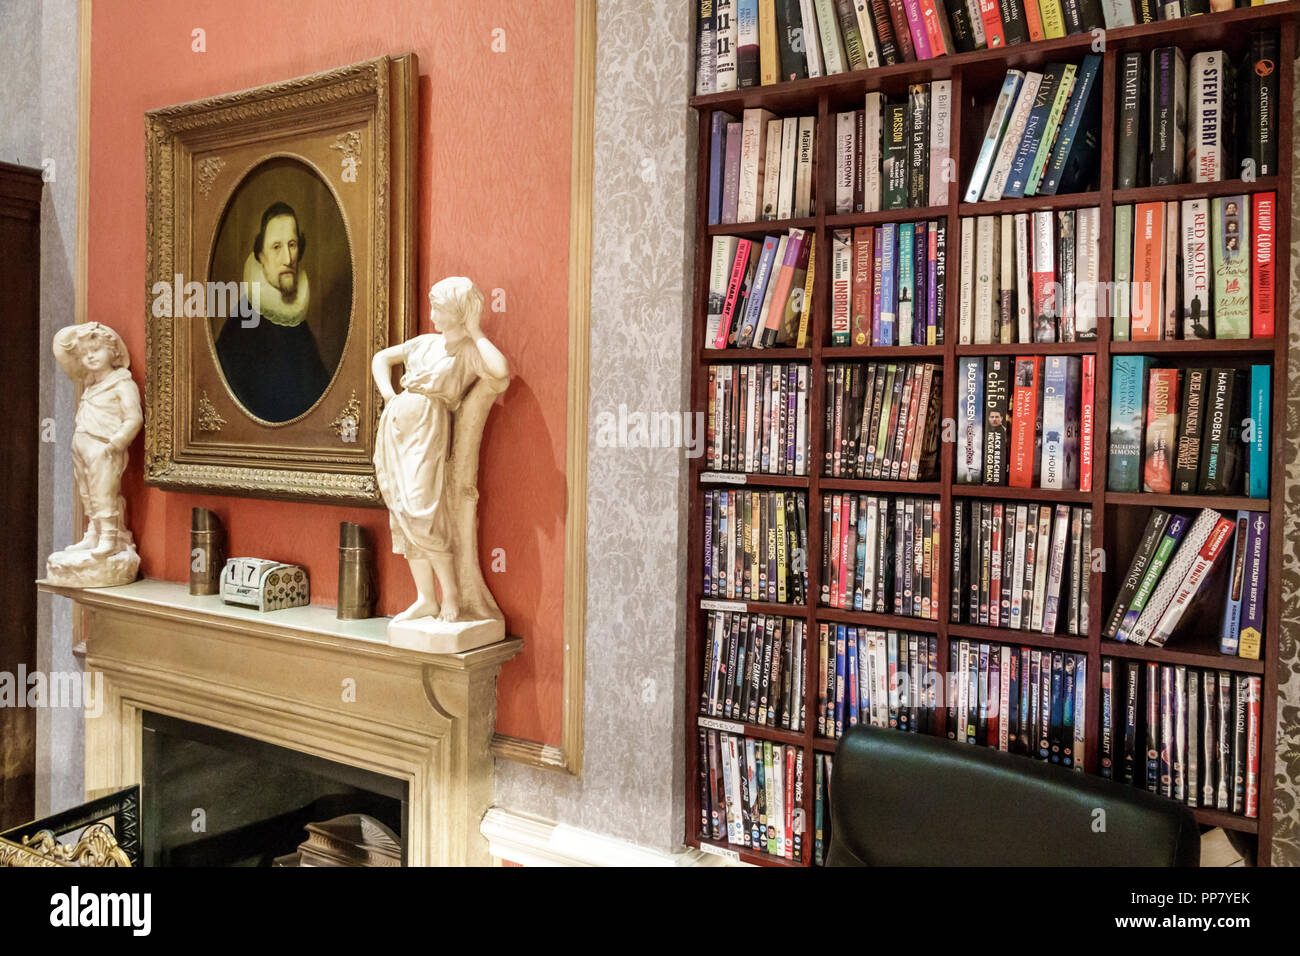 Britain Marylebone Marble Arch The Leonard Hotel Boutique Inside Interior Traditional Decor Lobby Library Fireplace Mantle Bookshelf Statuettes Painting